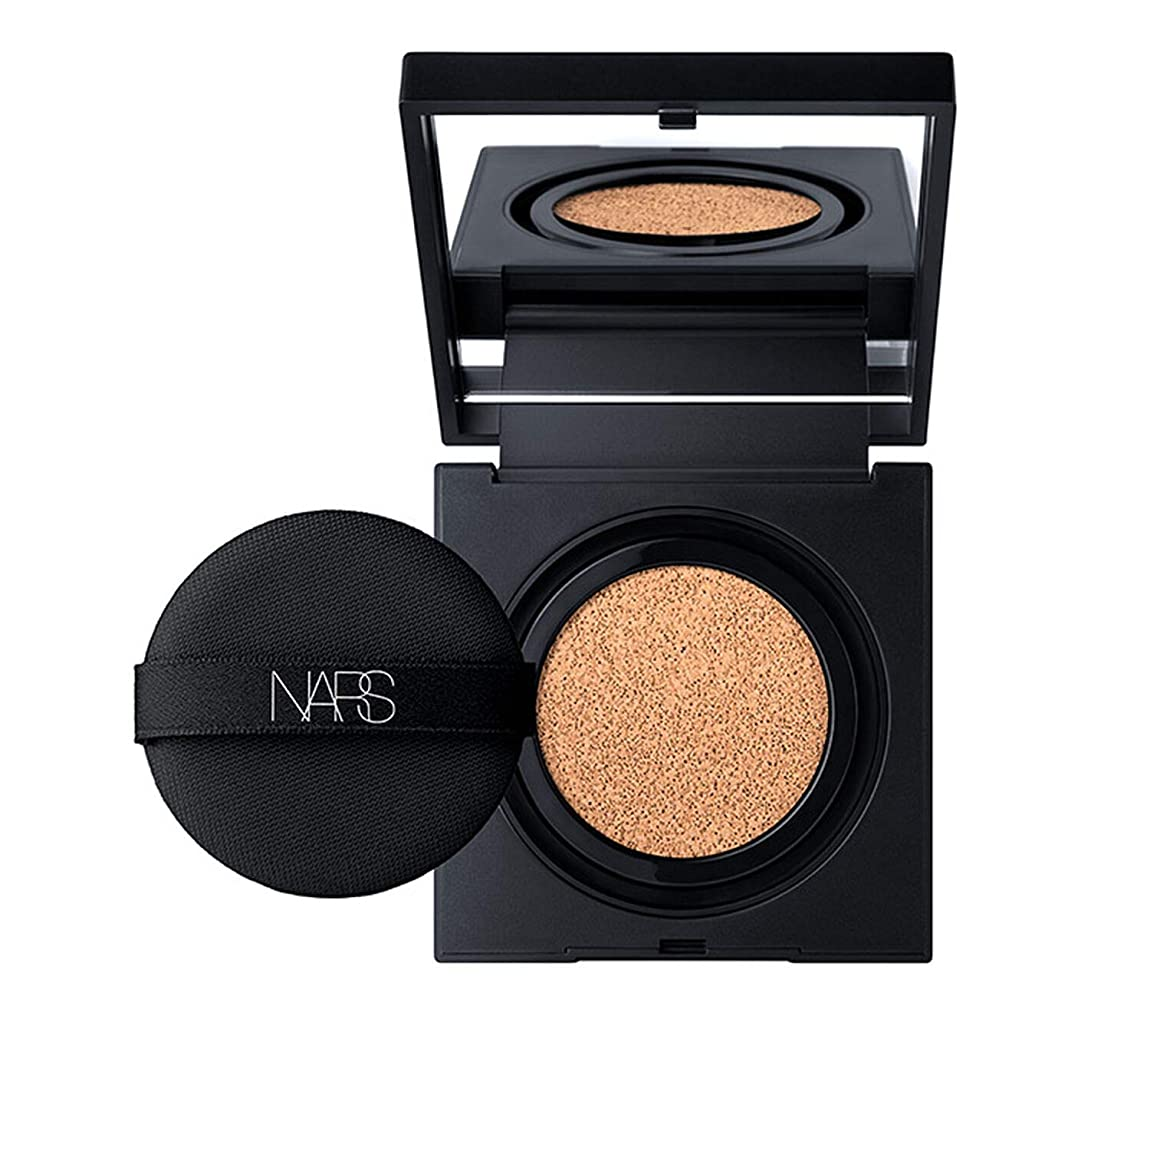 地球祖父母を訪問評価Nars(ナーズ) Natural Radiant Longwear Cushion Foundation 12g # Vienna